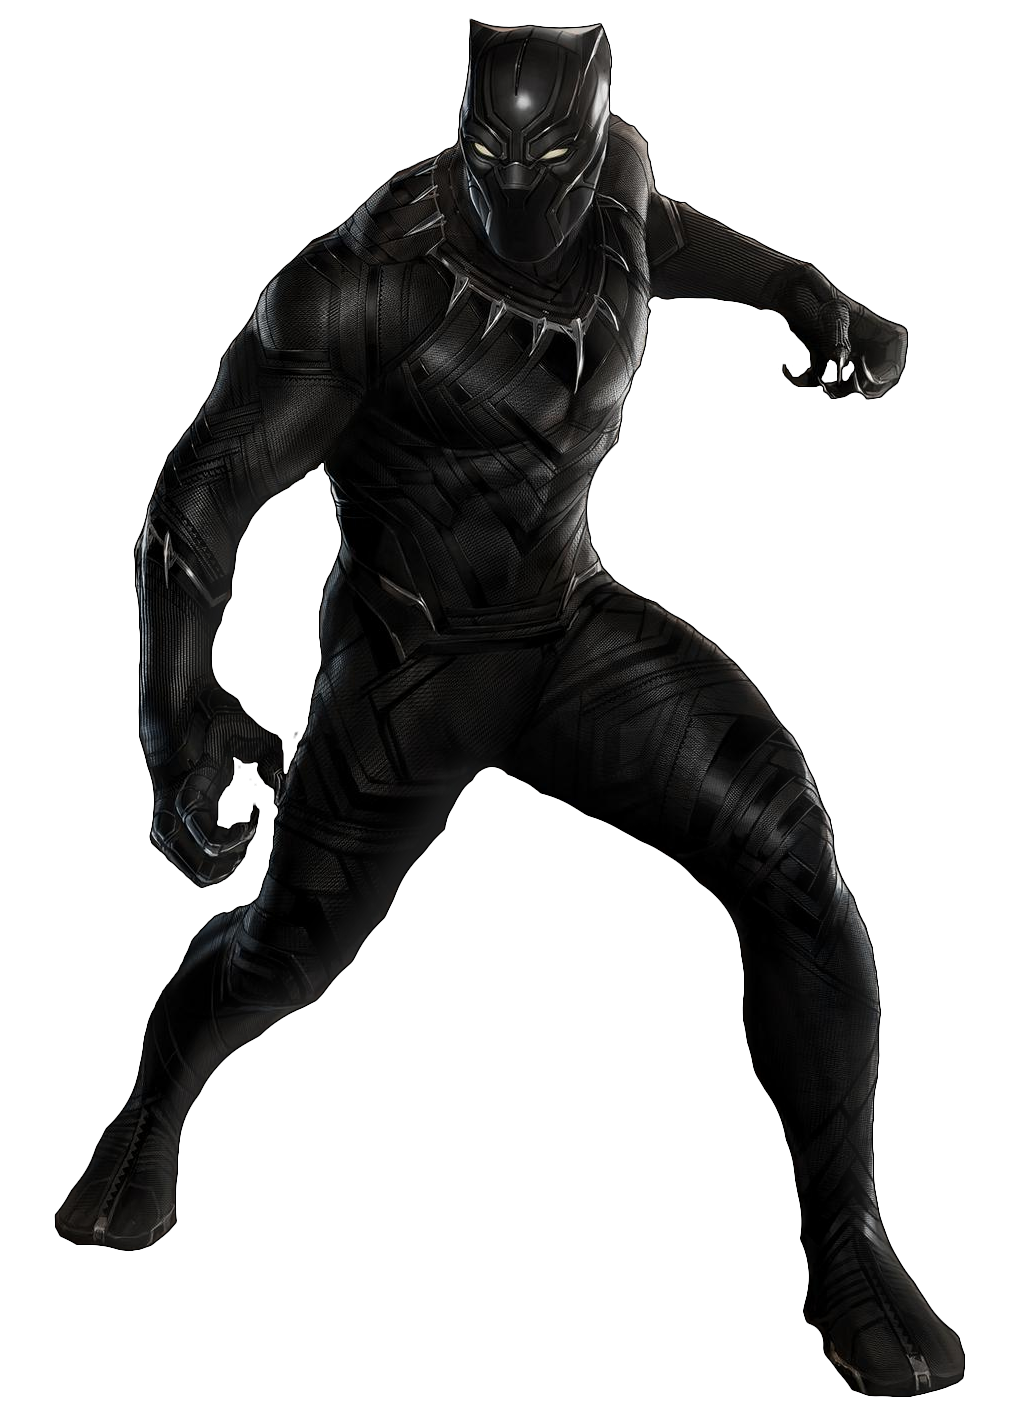 marvel black panther png